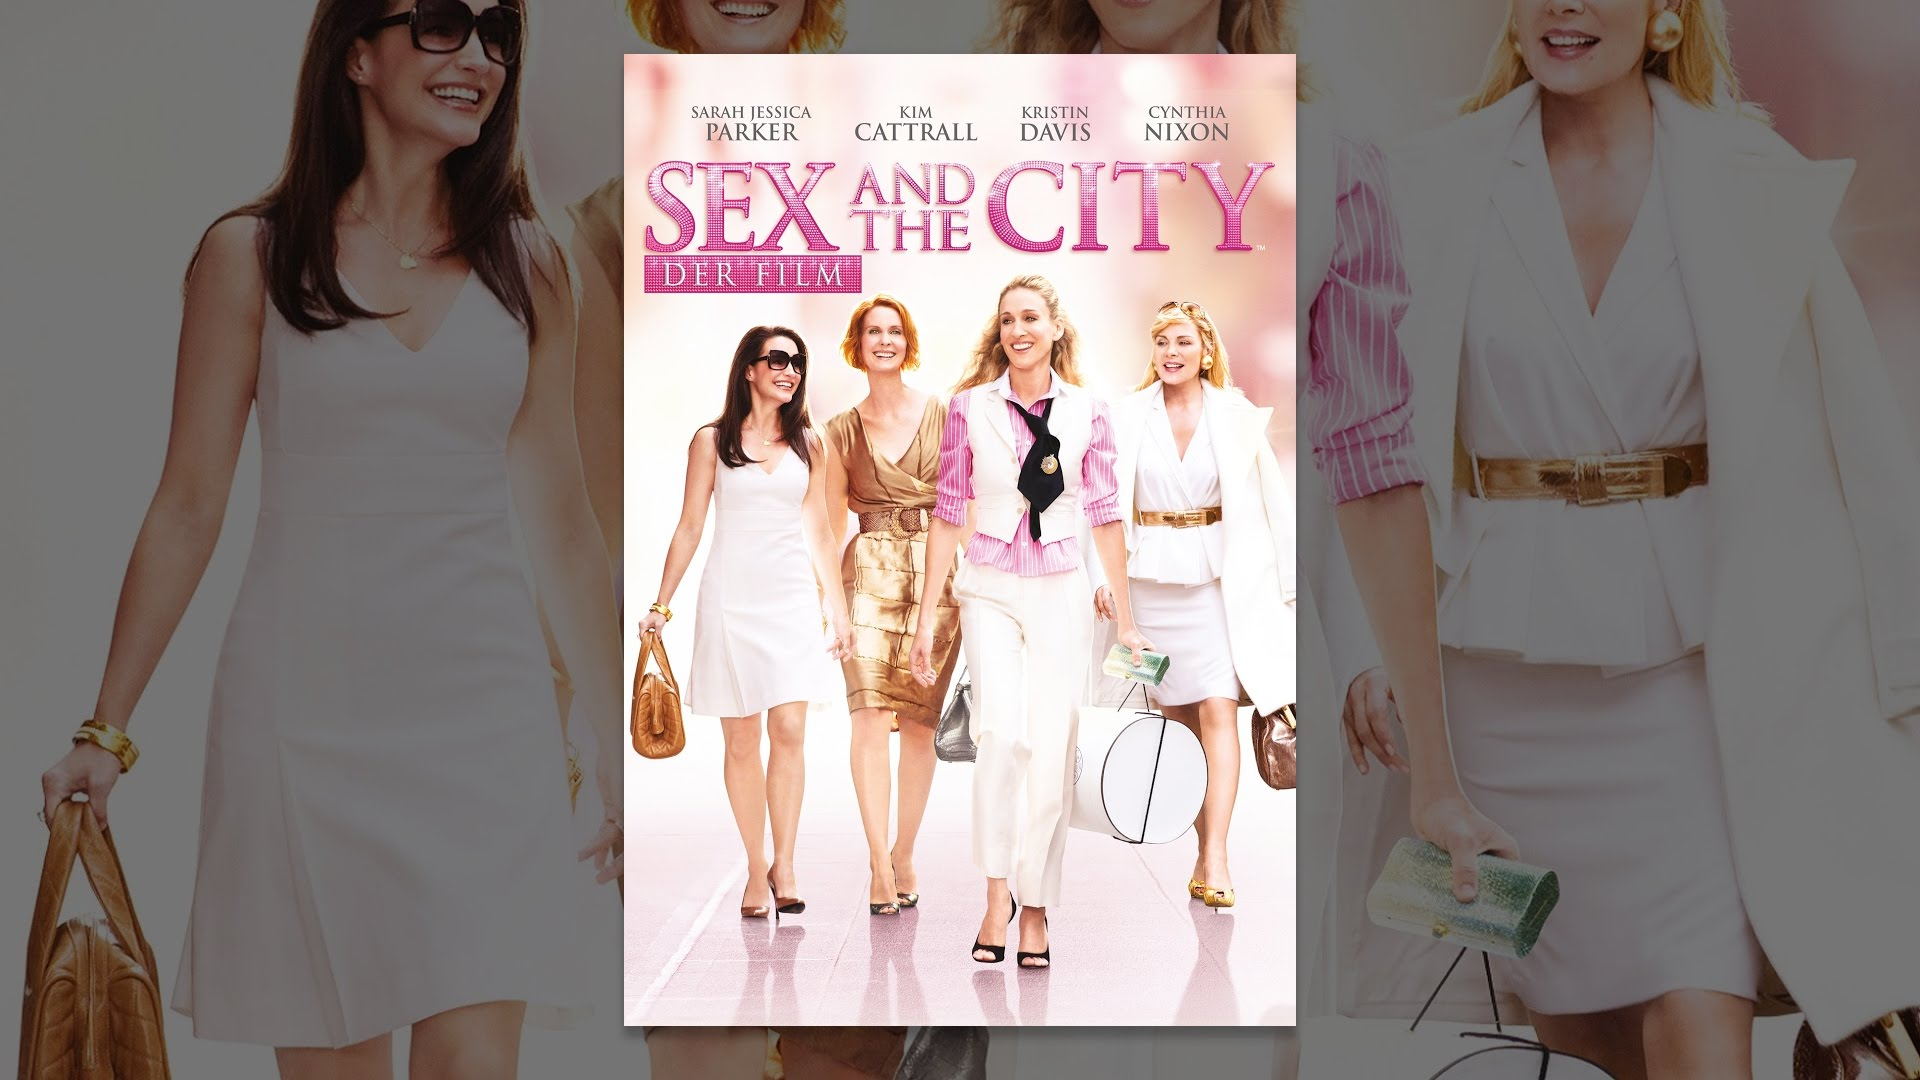 SEX AND THE CITY - 2008